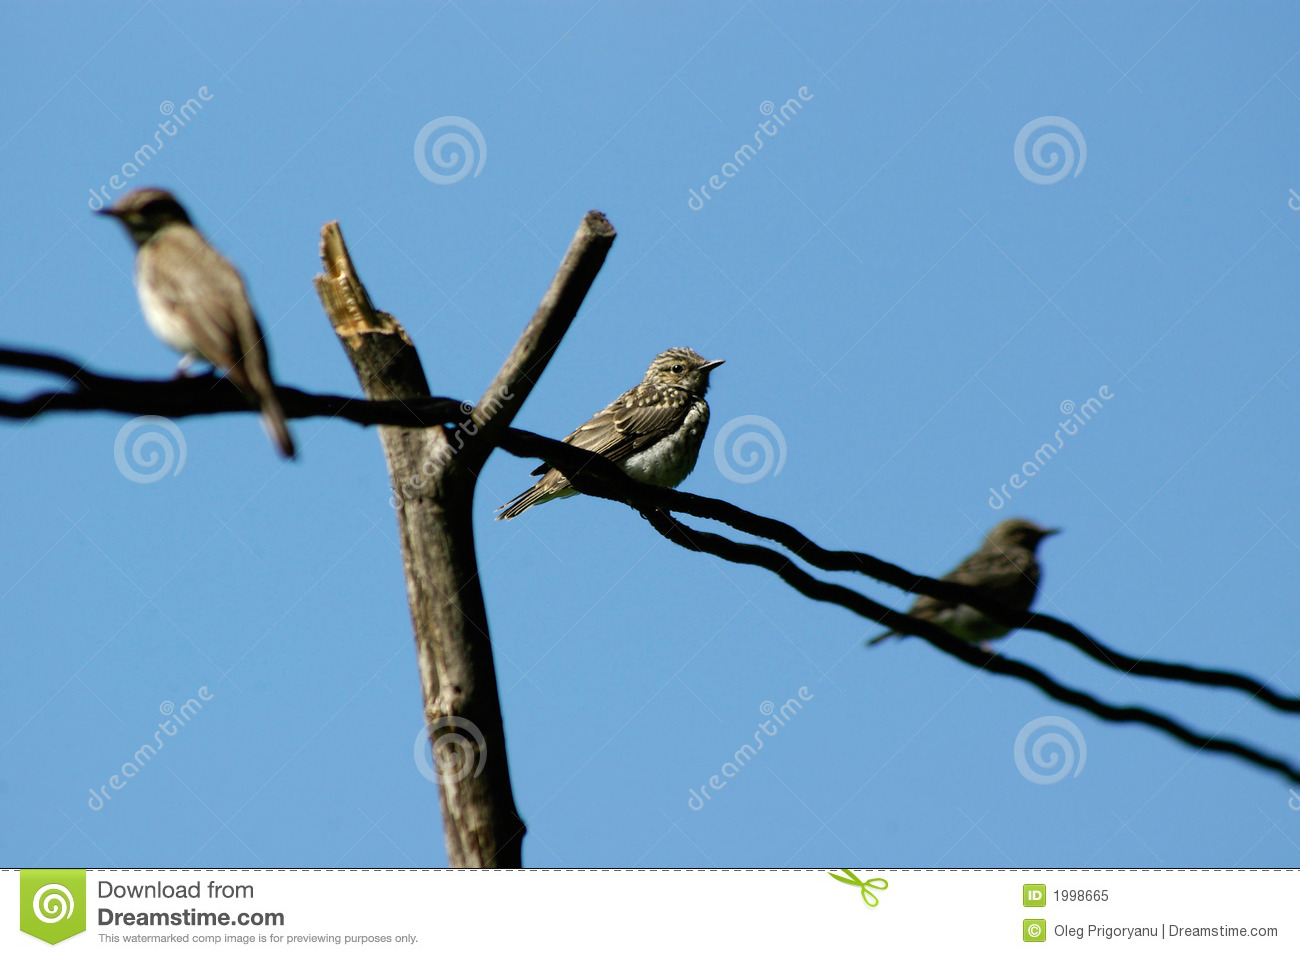 audio junkies bird on a wire download music